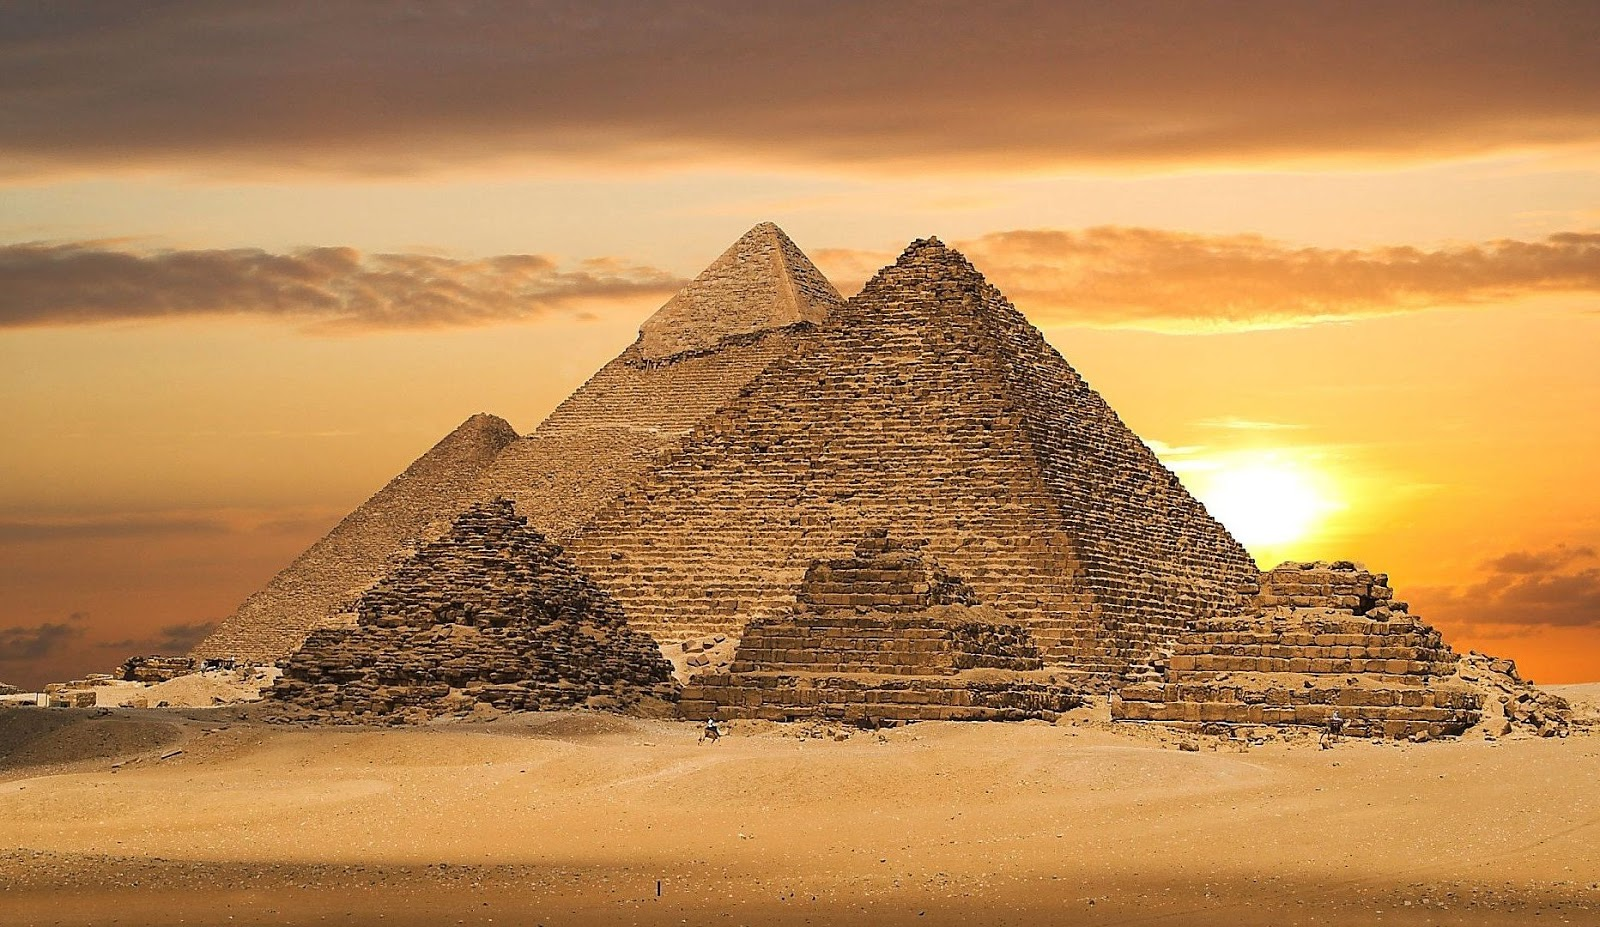 pyramid background - photo #20